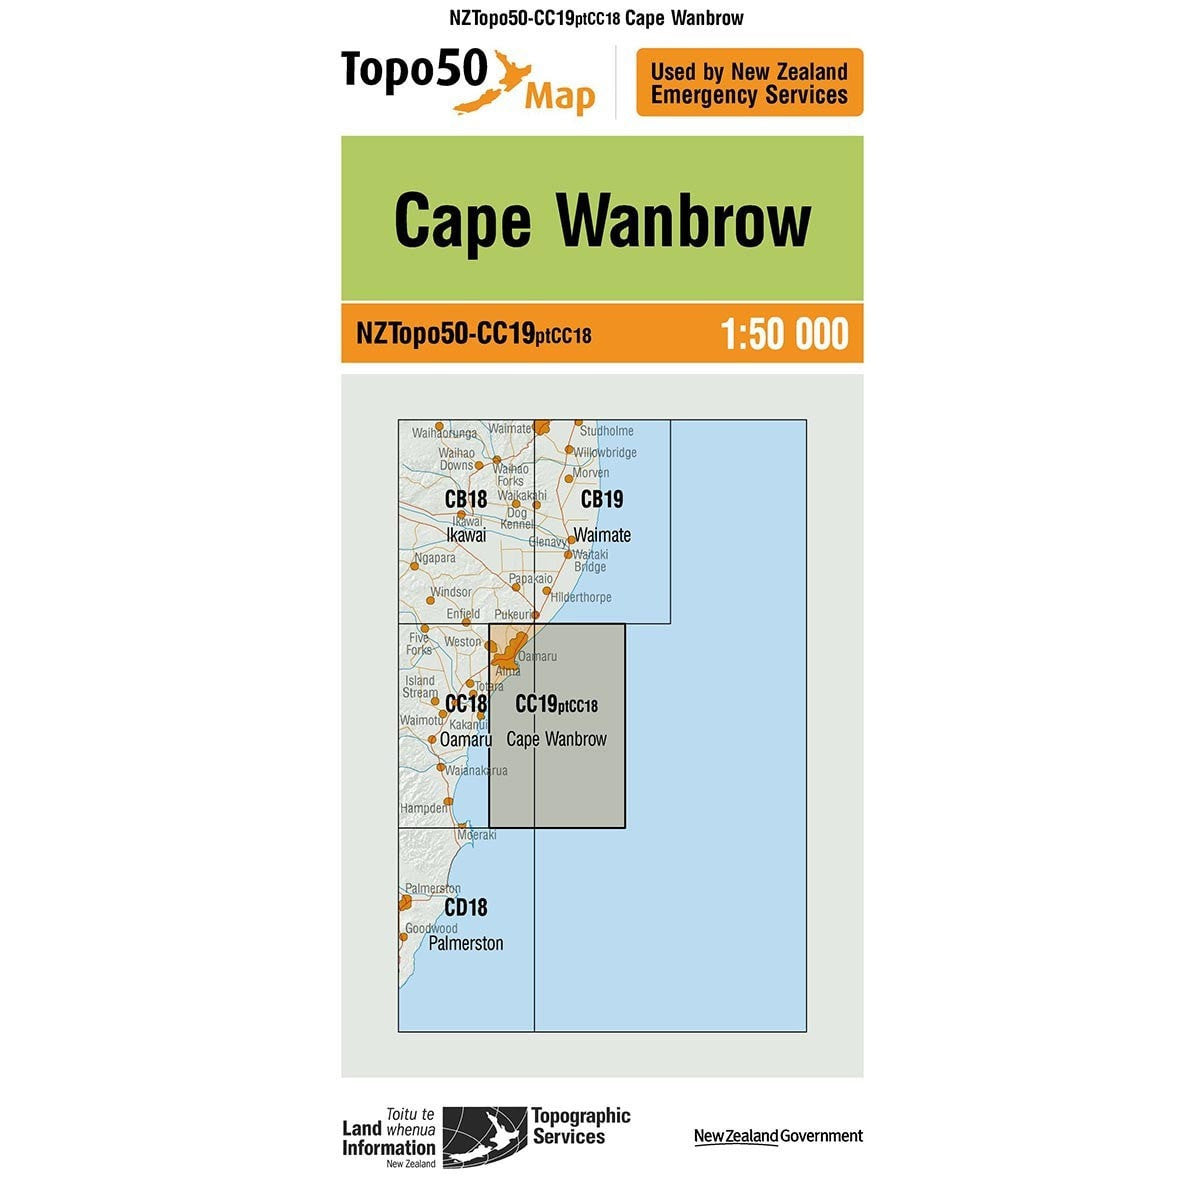 Buy Topo50 CC19 Cape Wanbrow NZ | NZ's Best Trail Running and Crossfit | Highbeam.co.nz - Get out there and go for a run!